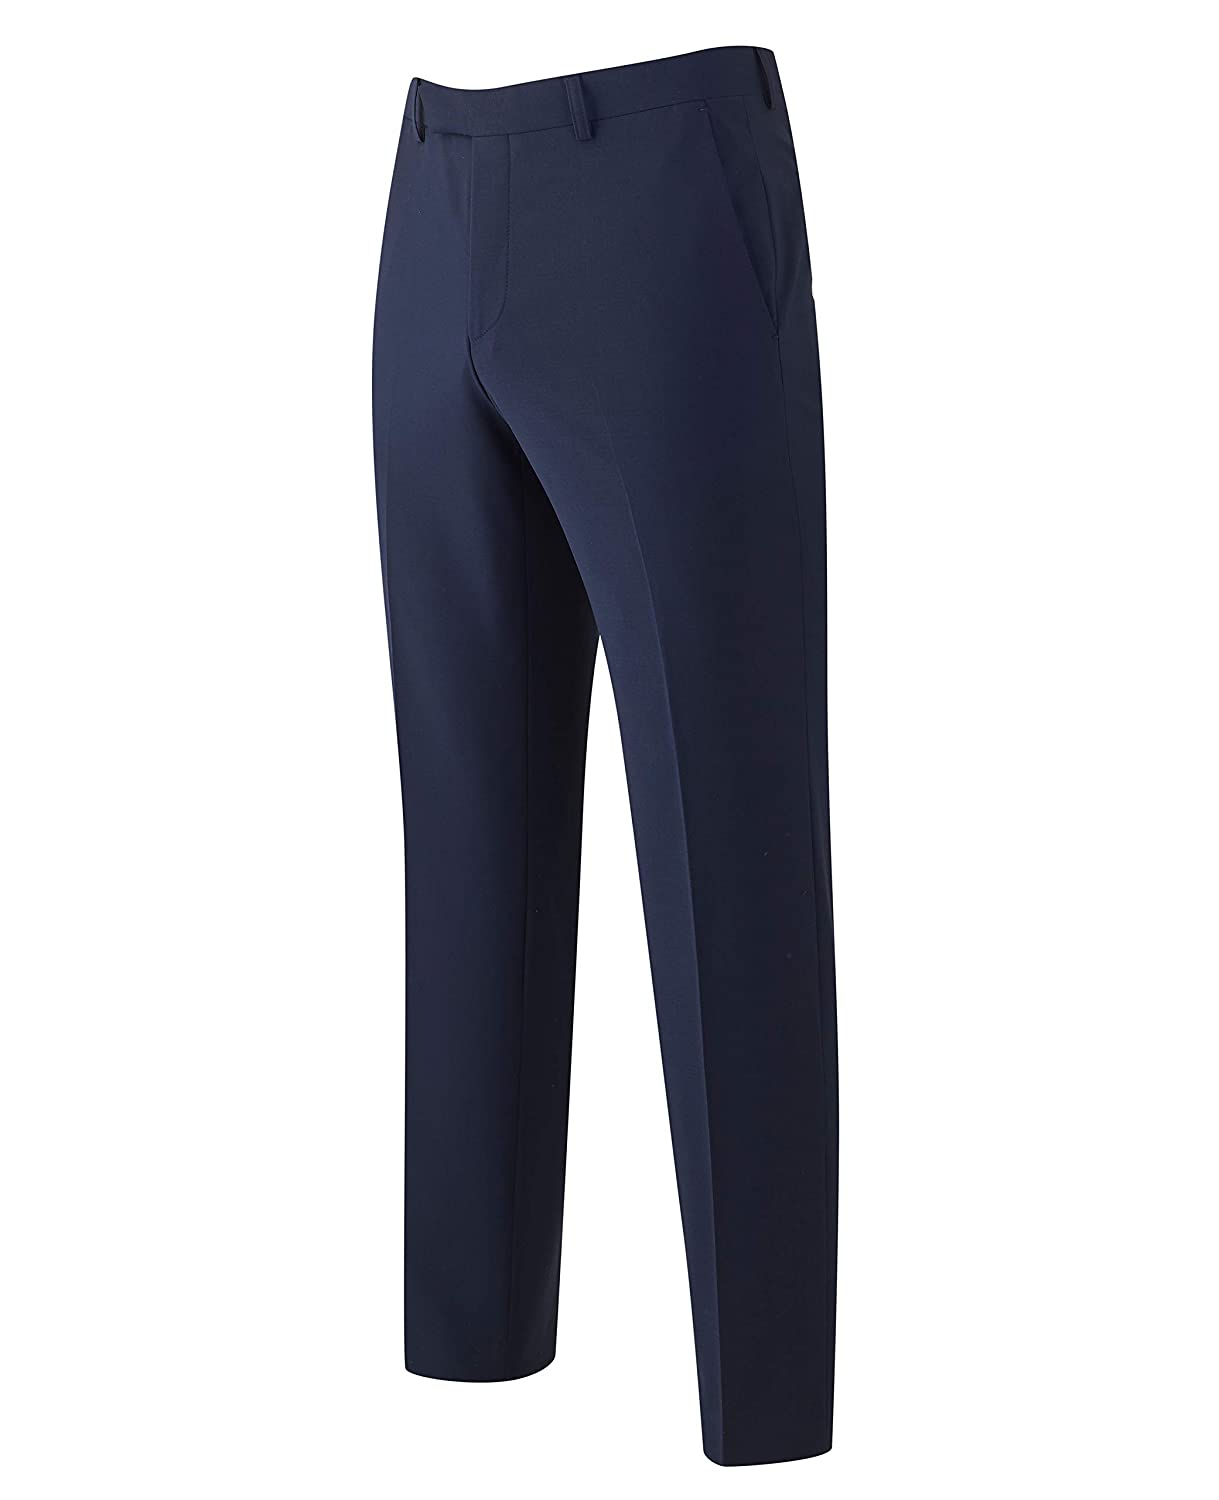 Savile Row Company Mens Navy Wool-Blend Suit Trousers